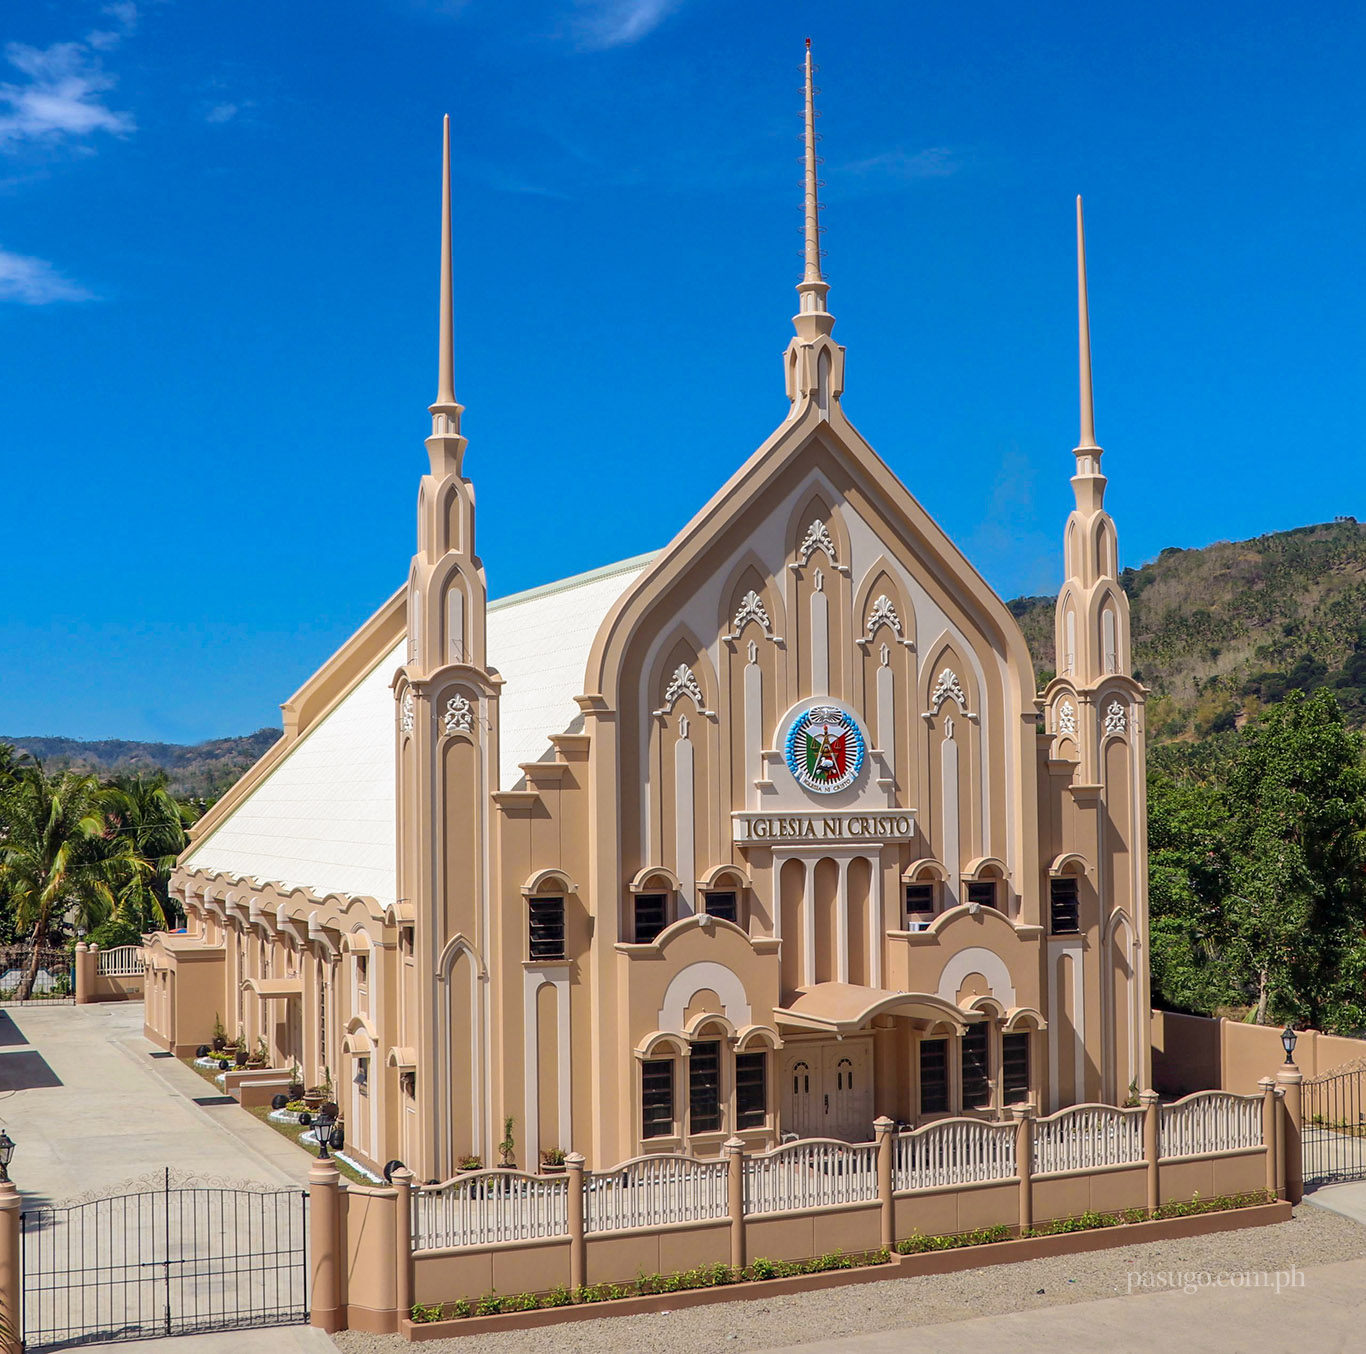 Tukuran Congregation house of worship in Zamboanga del Sur dedicated to God on April 19, 2019